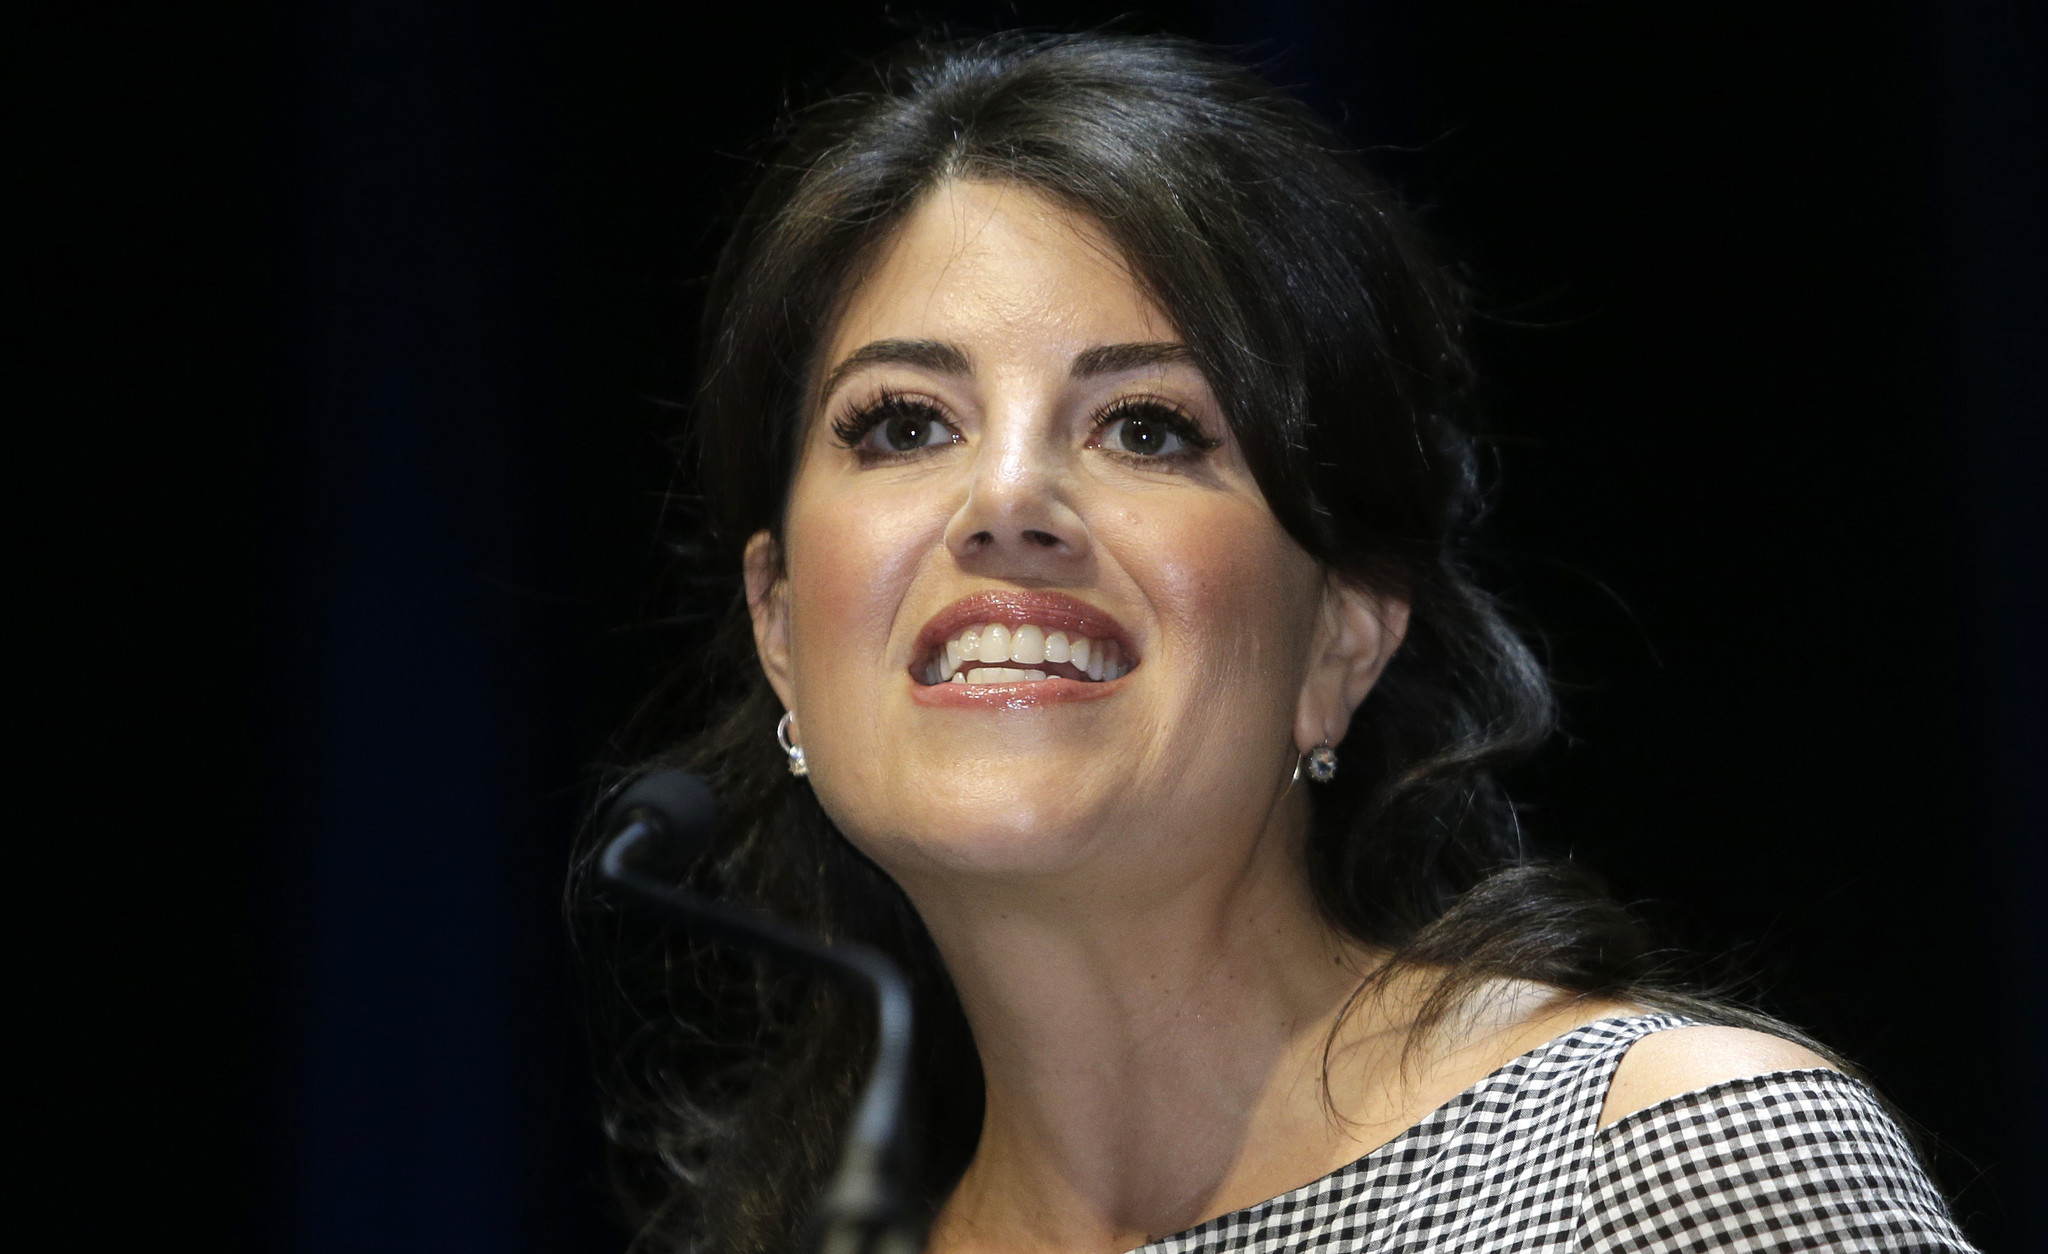 monica-lewinsky-can-breathe-a-sigh-of-relief-two-tv-channels-drop-their-plans-for-clinton-shows-chicago-tribune